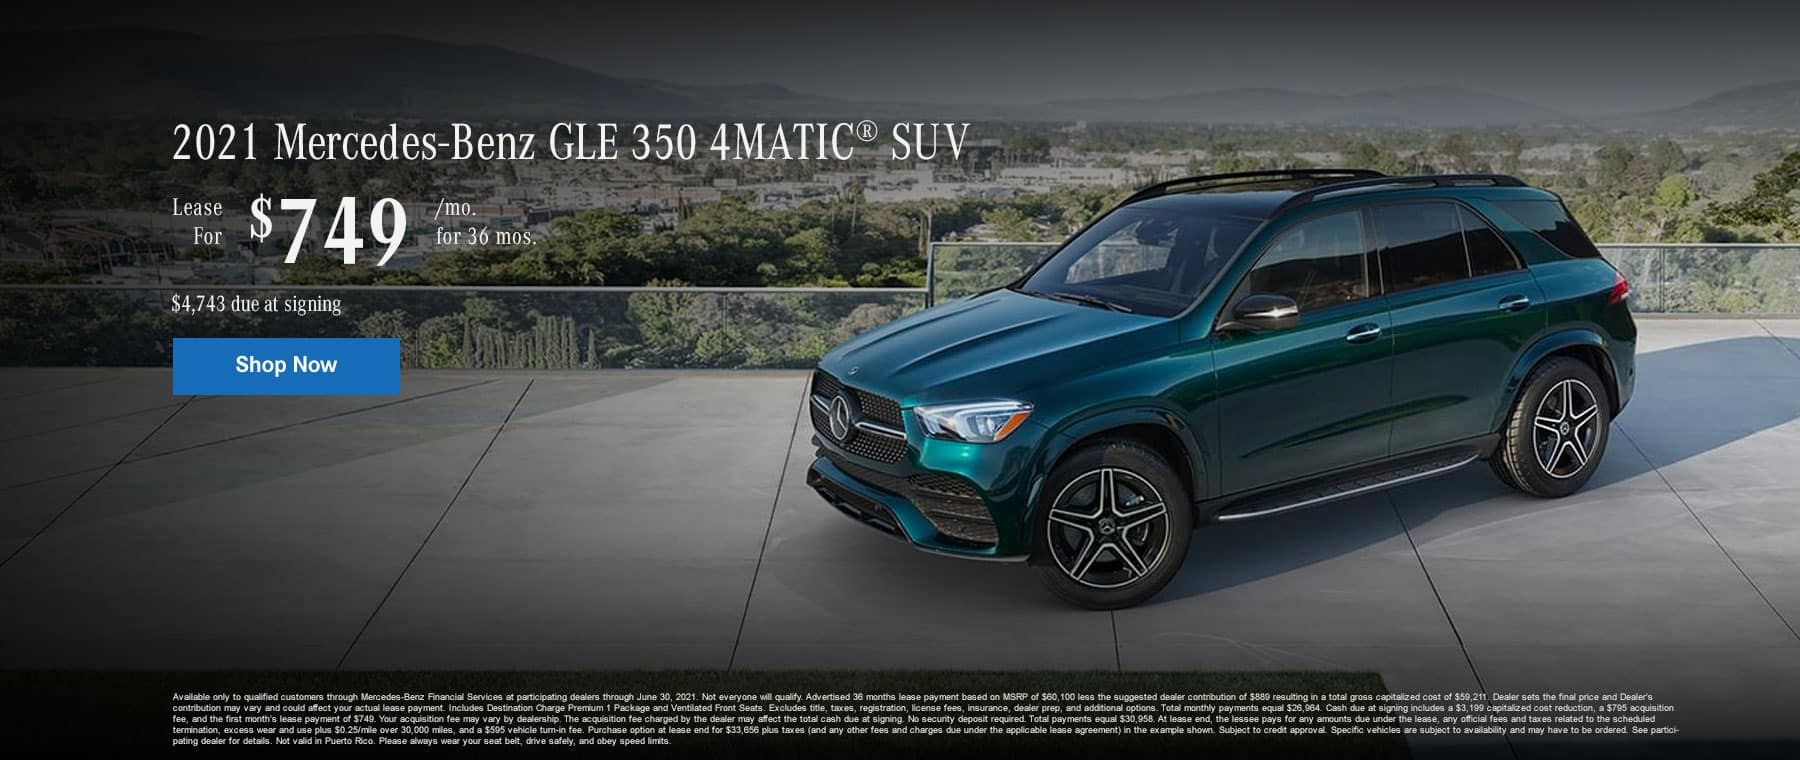 2021 Mercedes-Benz GLE 350 4MATIC® SUV Lease for $749/month for 36 months. $4,743 due at signing